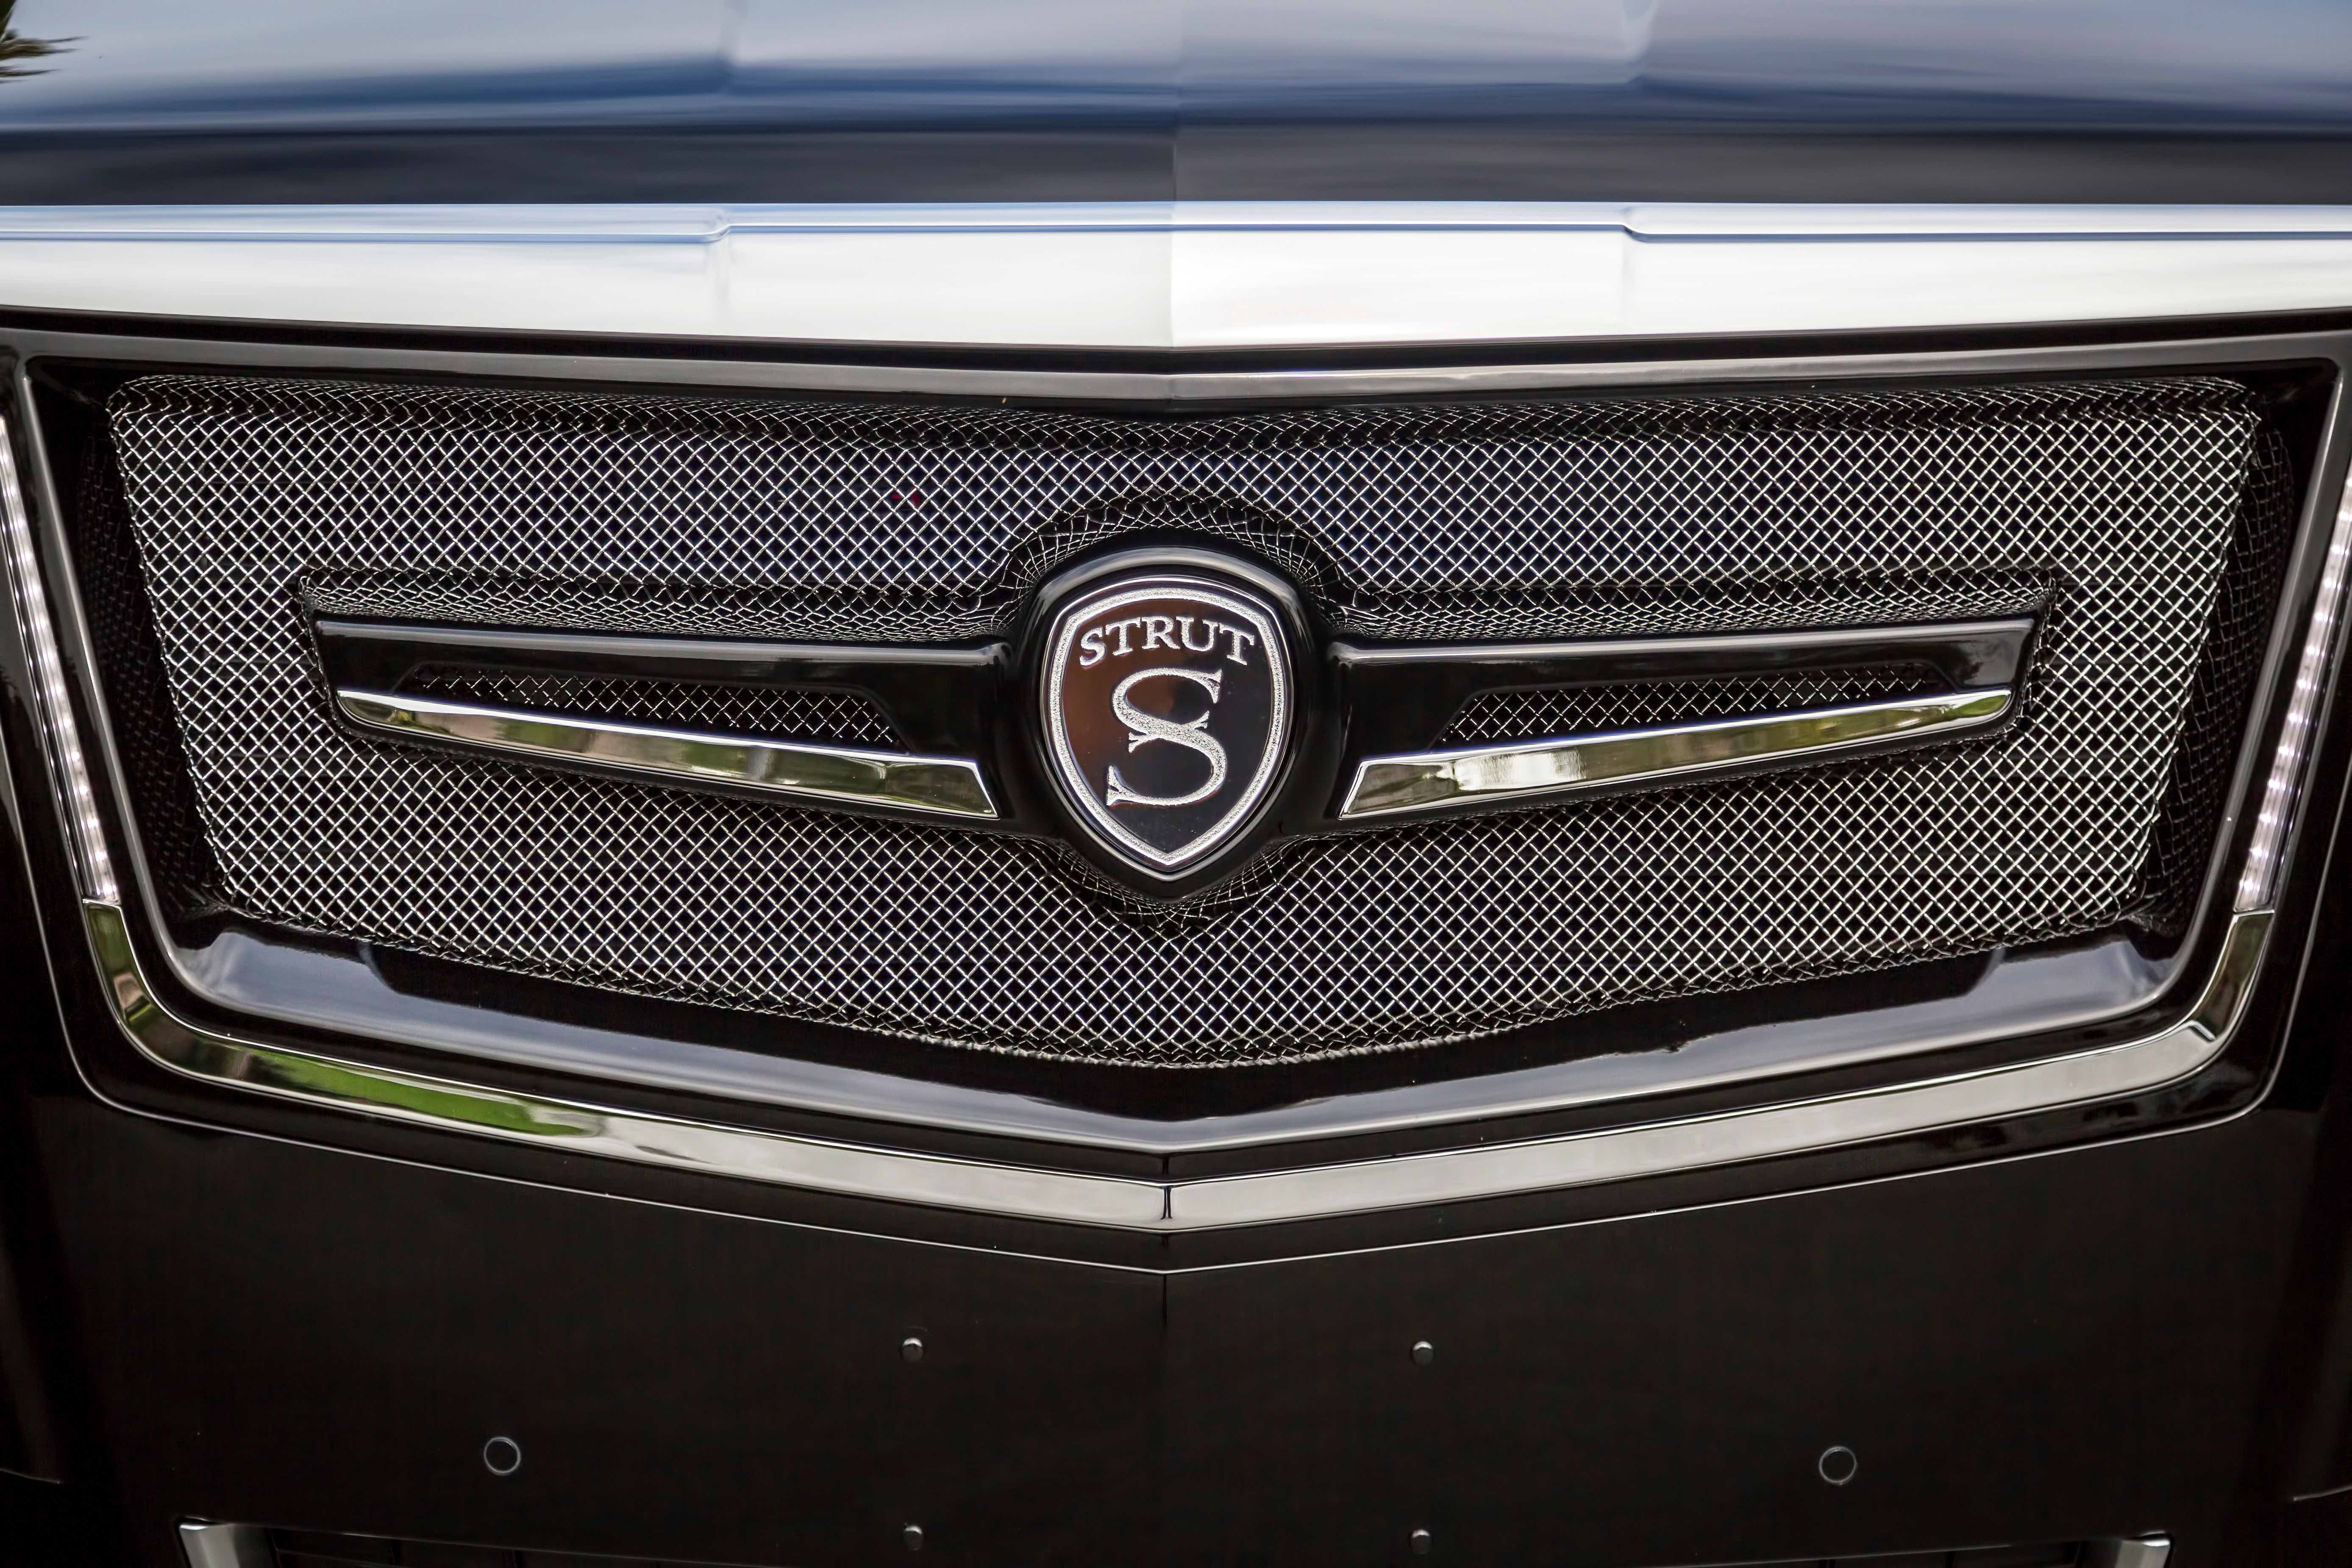 pinterest vogue accessories tyres ride ultimate wheels tired the escalade your grille and for pin cadillac